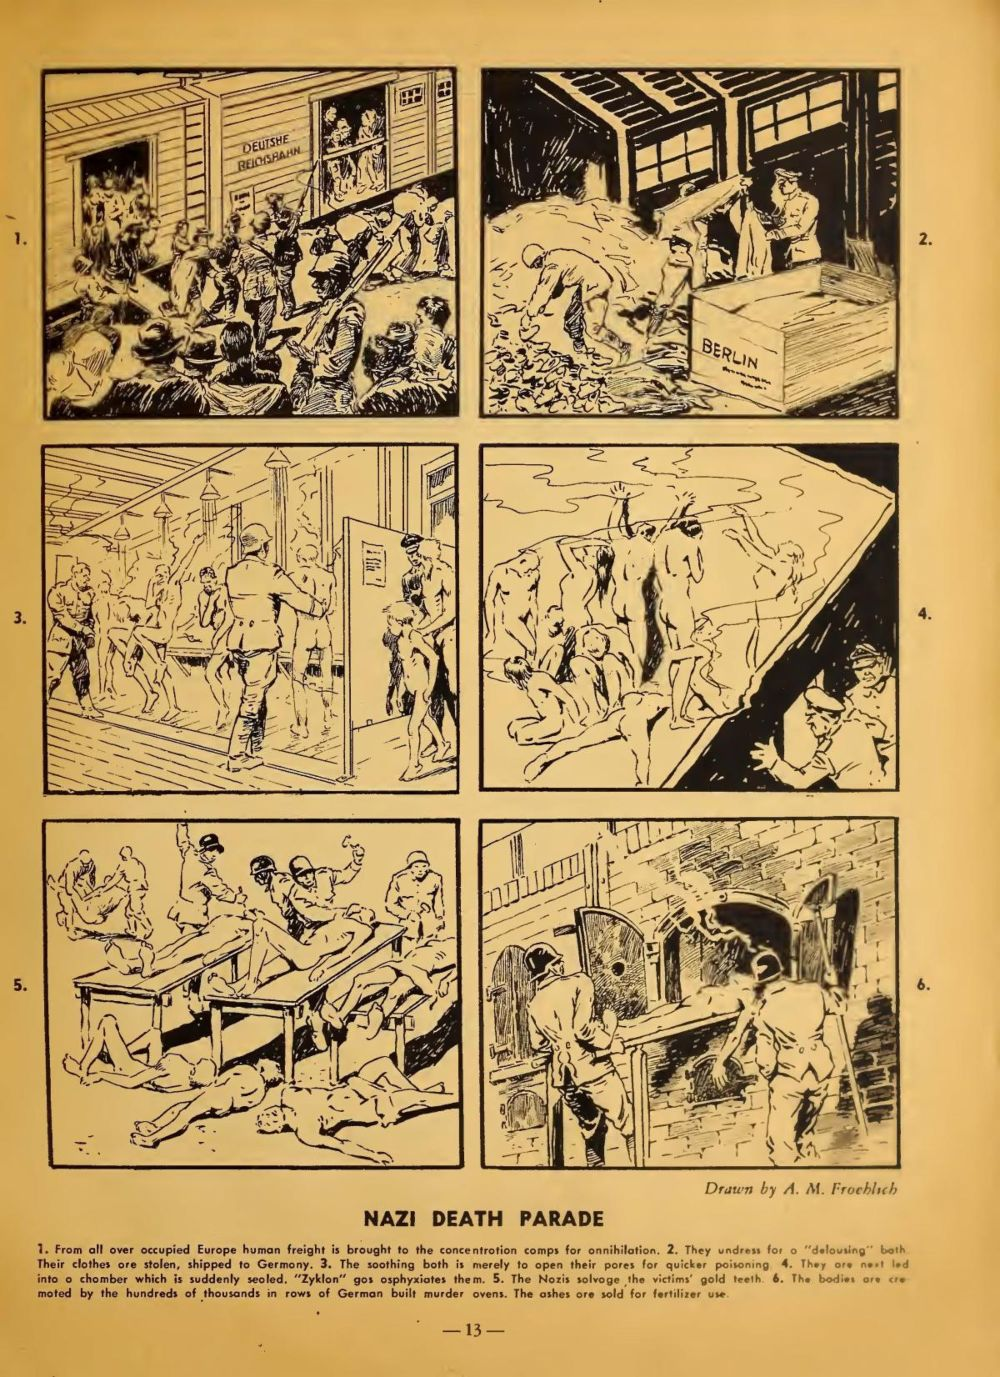 August M. Froehlich_Nazi Death Parade_ The Bloody Record of Nazi Atrocities © Arco Publishing Company NYC 1944-1945